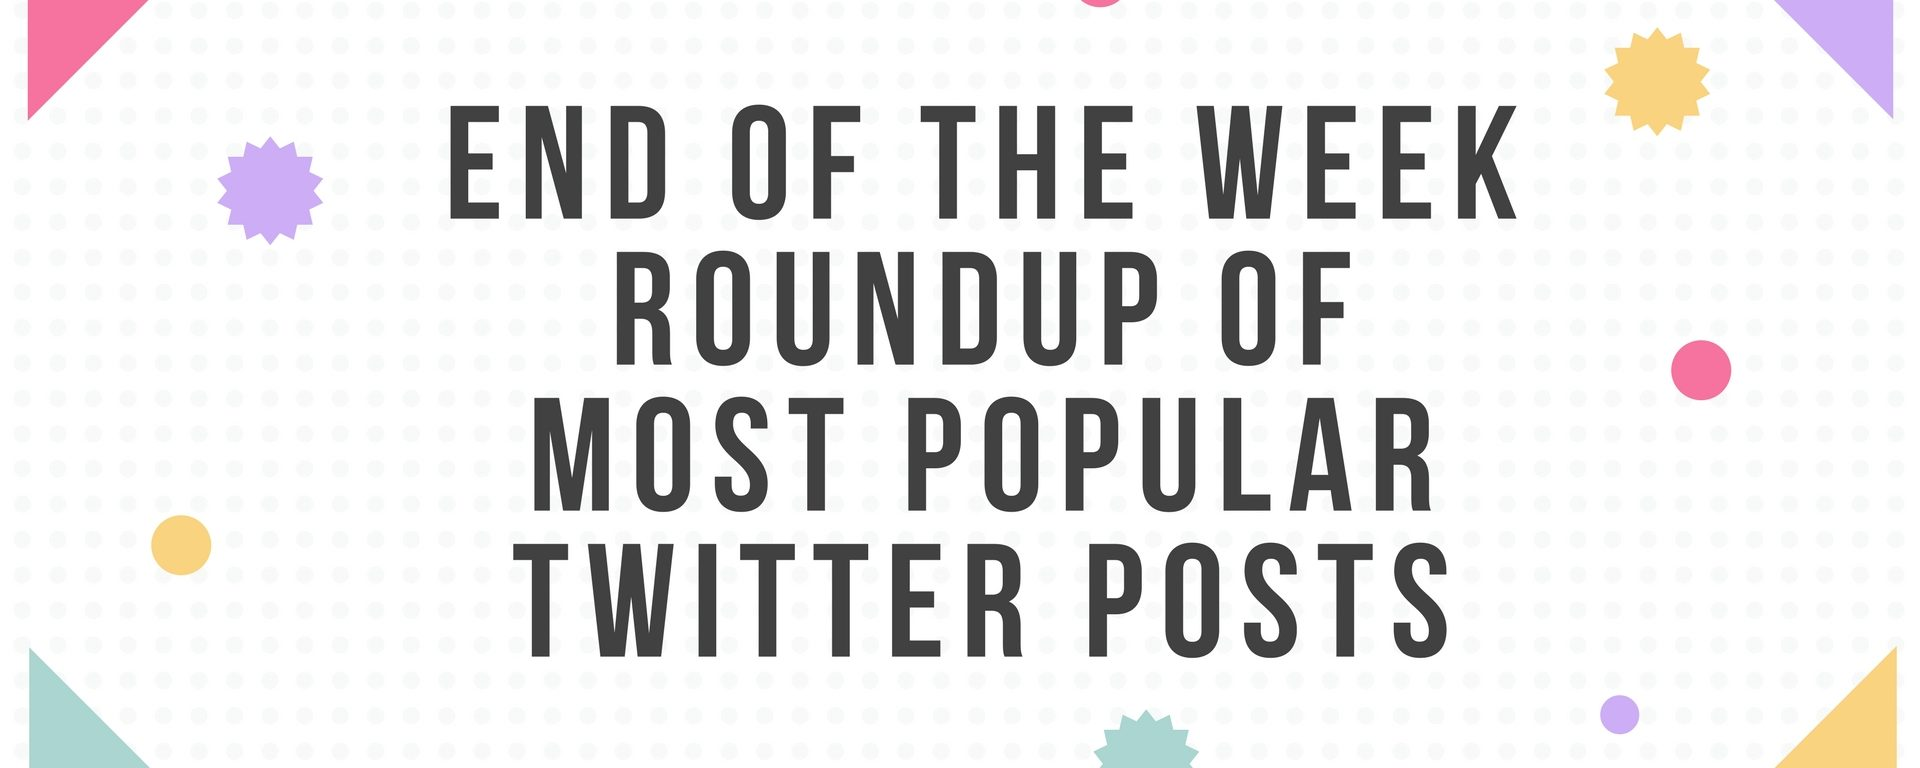 End of the Week Roundup of Most Popular Twitter Posts